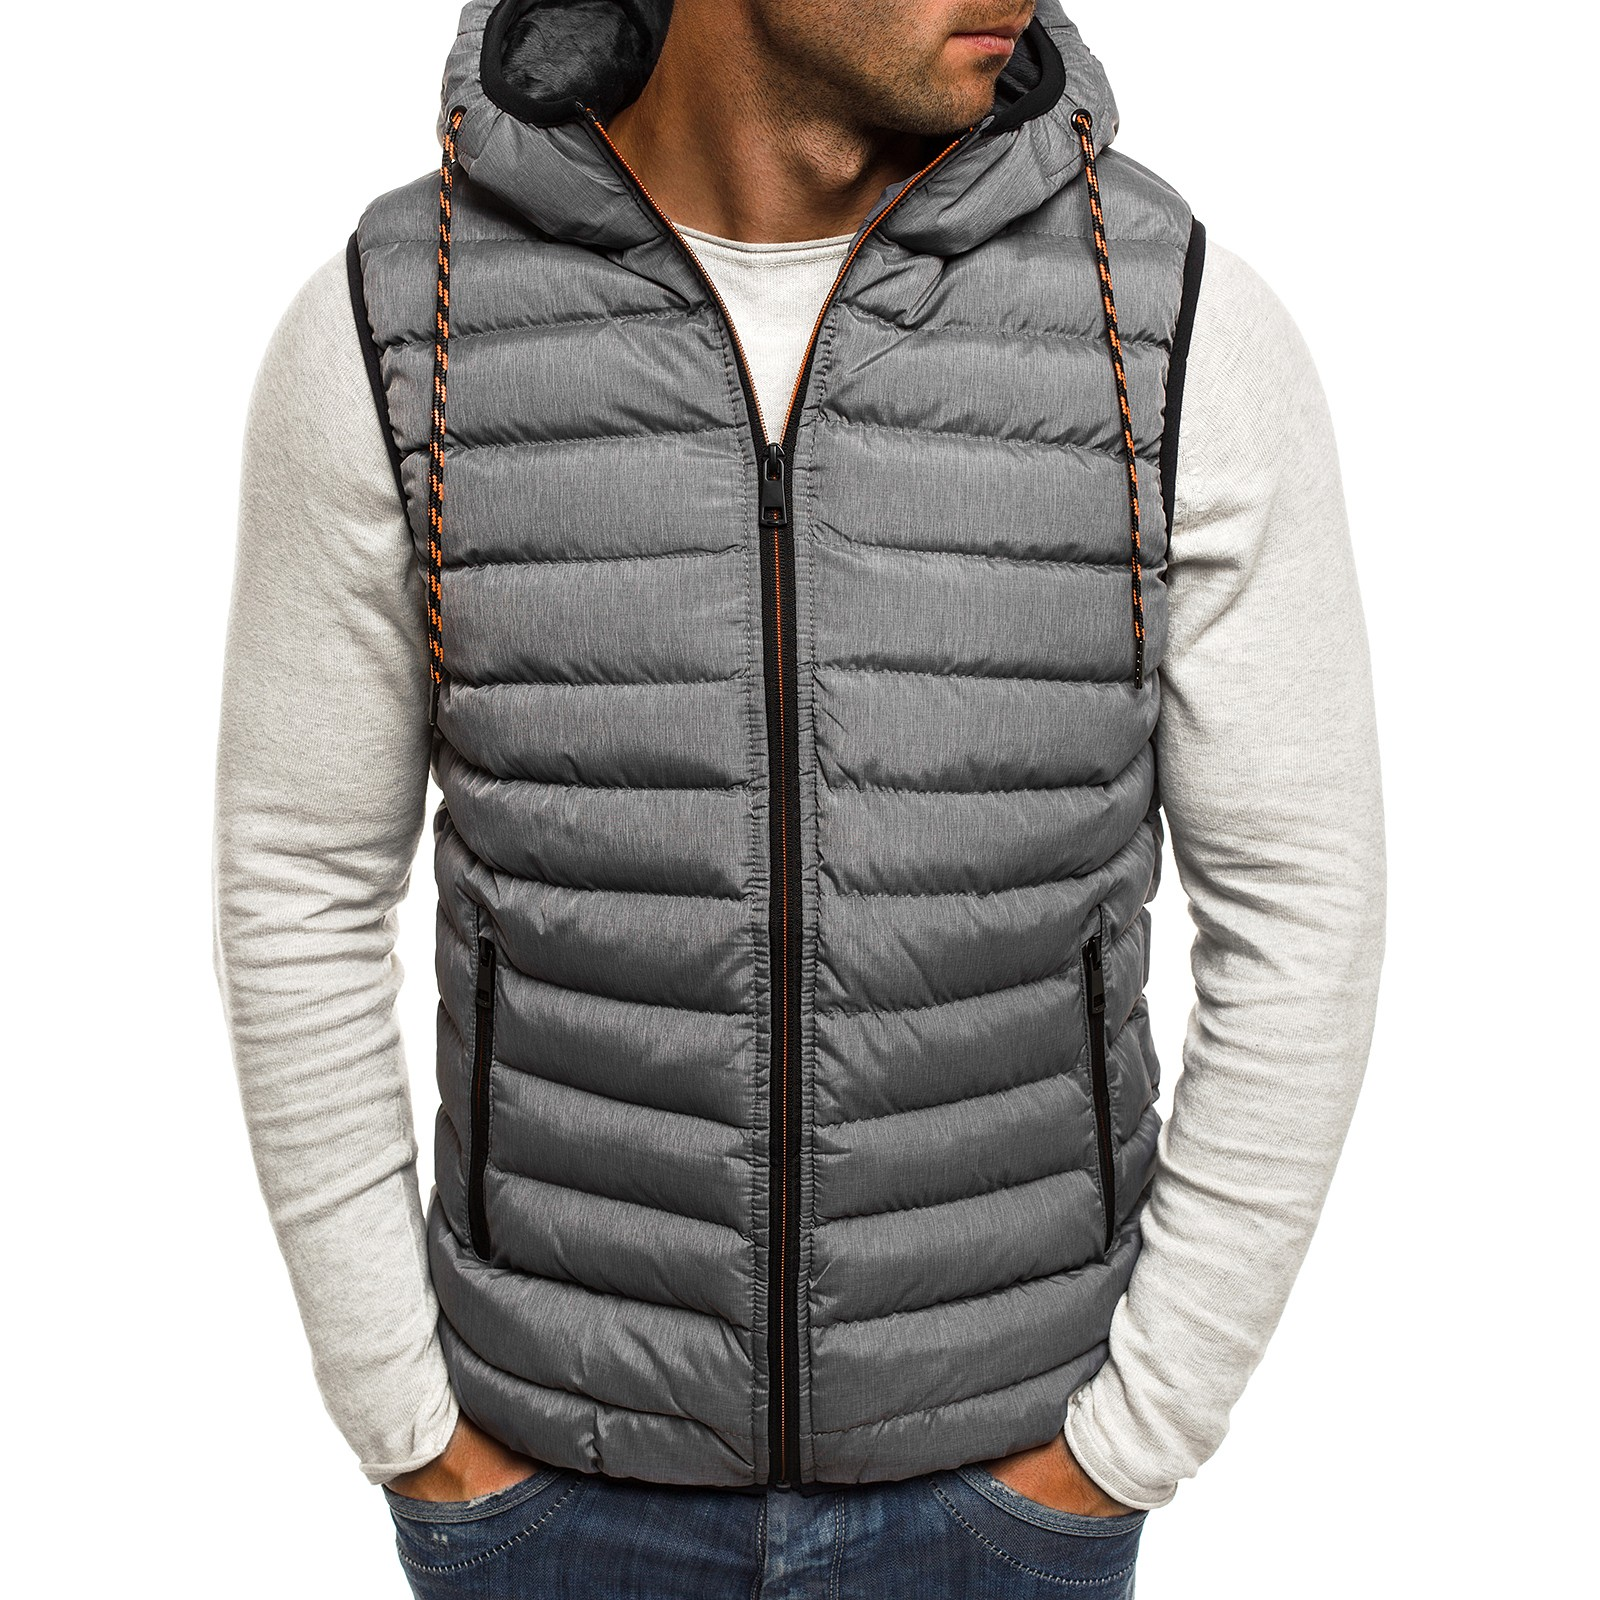 ZOGAA New Men Winter Jacket New Casual Fashion Hood Mens Winter Vests  Winter Vest Plus Size M-4XL Mens Lightweight Jacket 2019